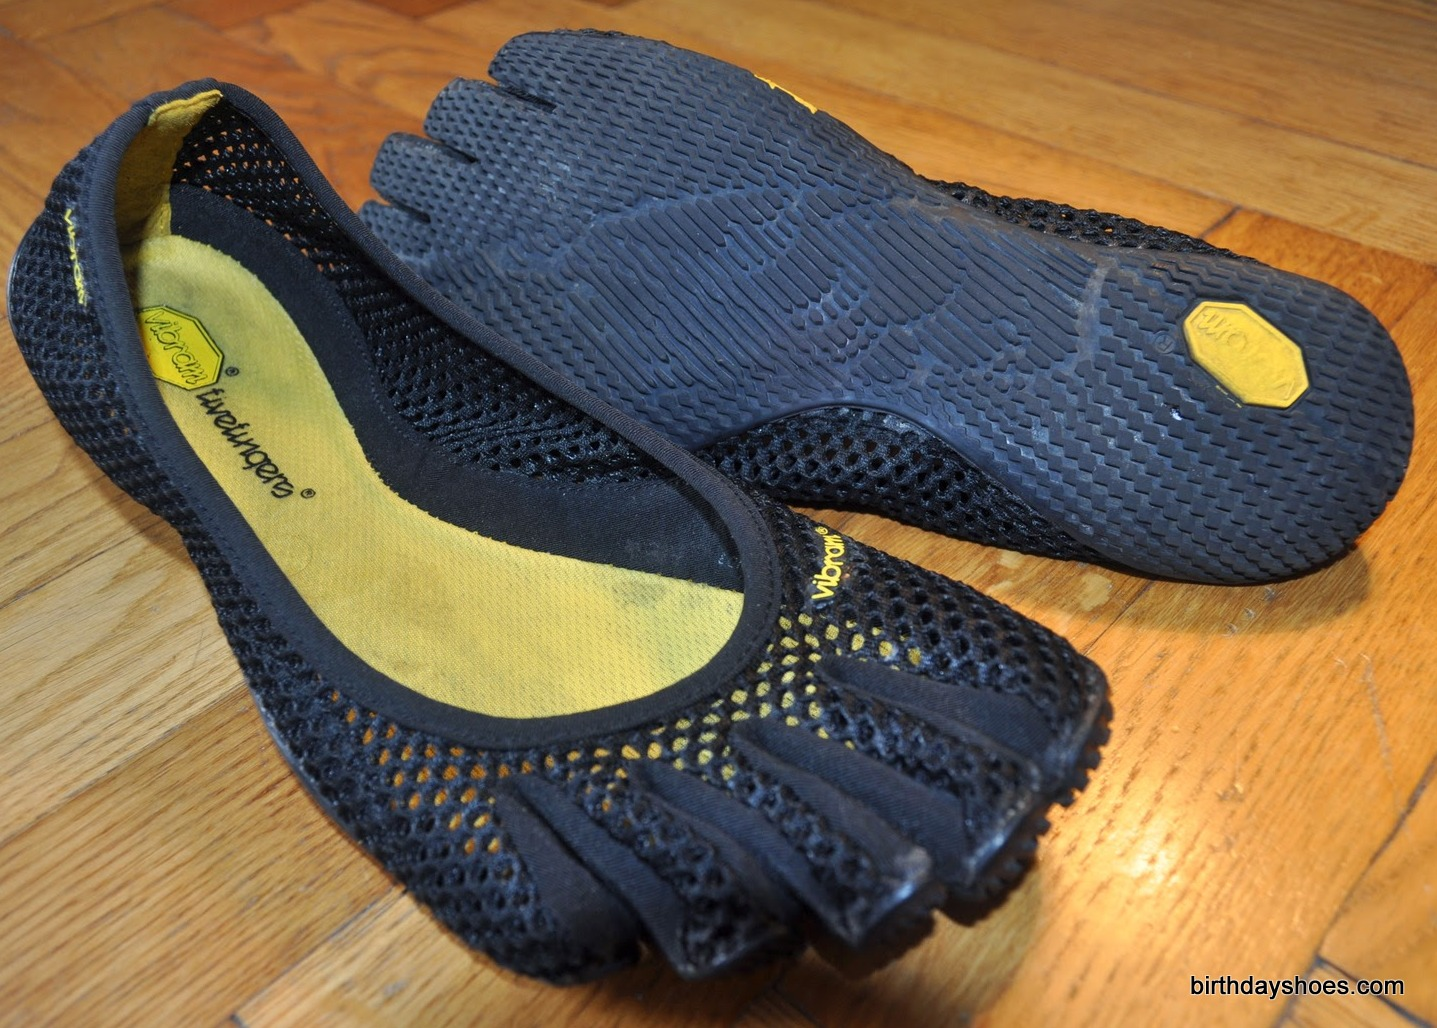 The VI-B FiveFingers is a women's-only, ultra-minimalist VFF that is reminiscent of the old Classic FiveFingers.